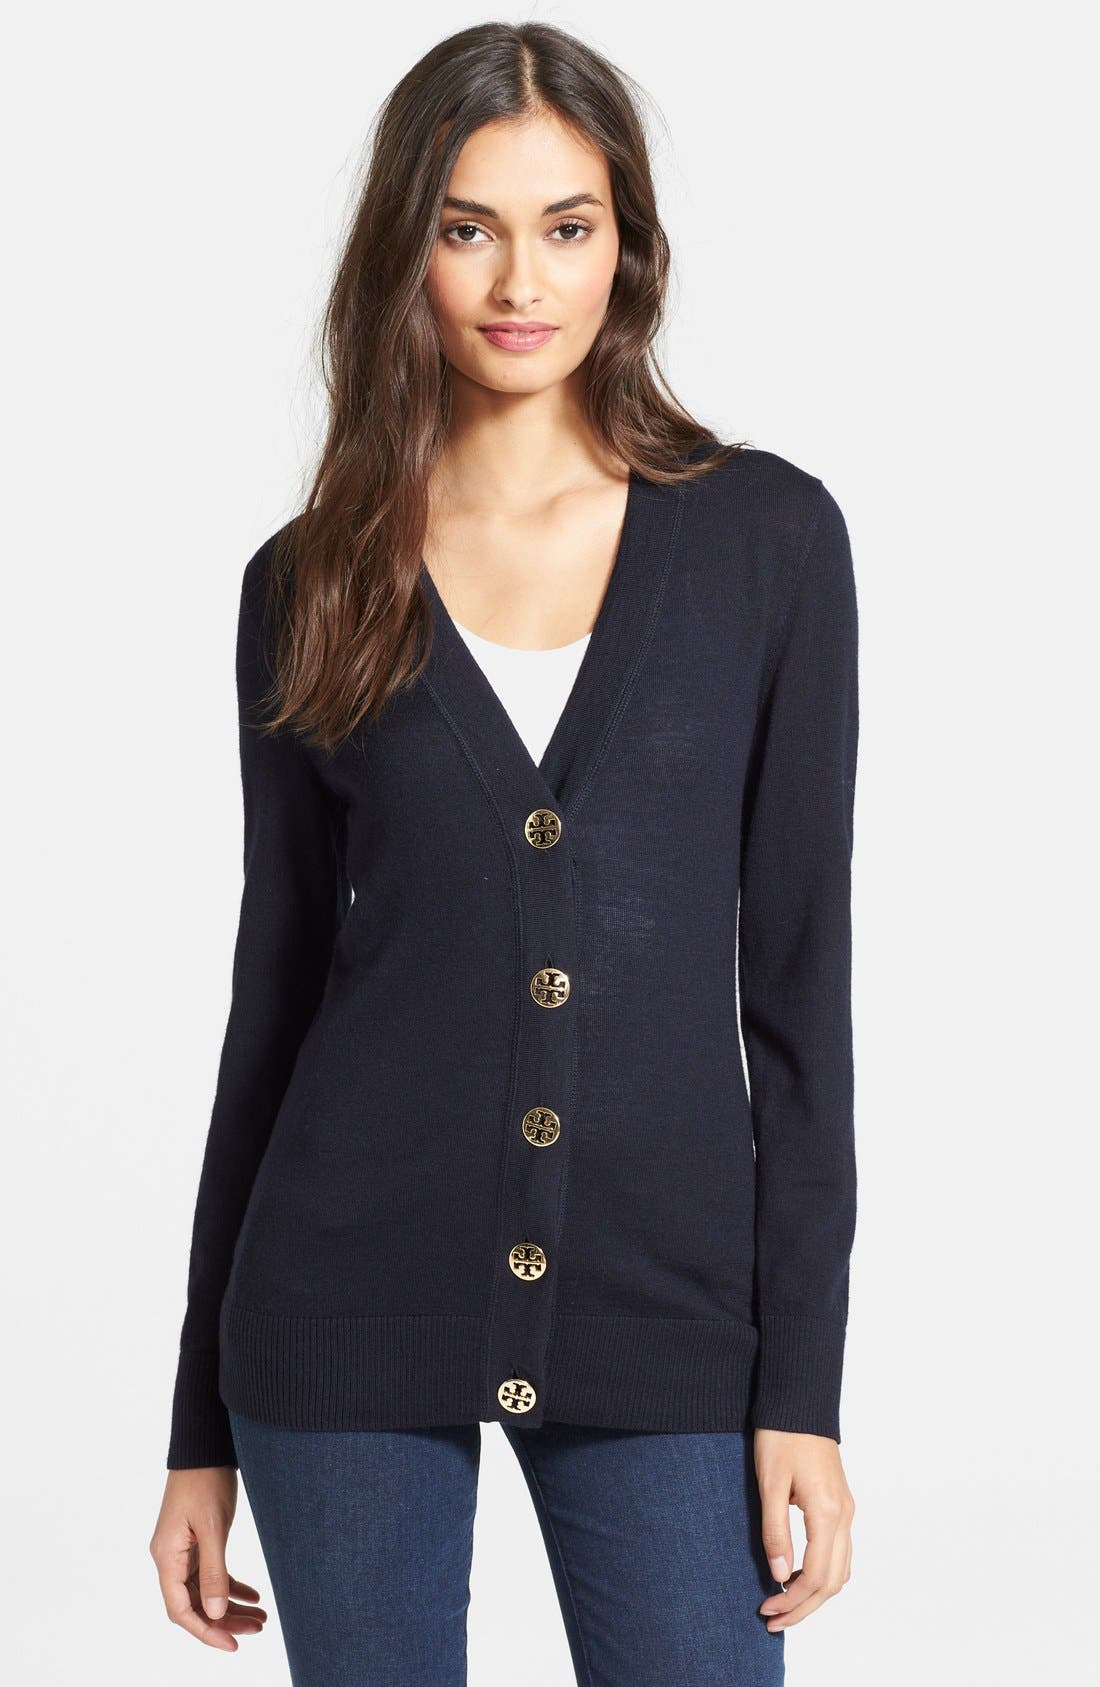 Alternate Image 1 Selected - Tory Burch 'Simone' Merino Cardigan